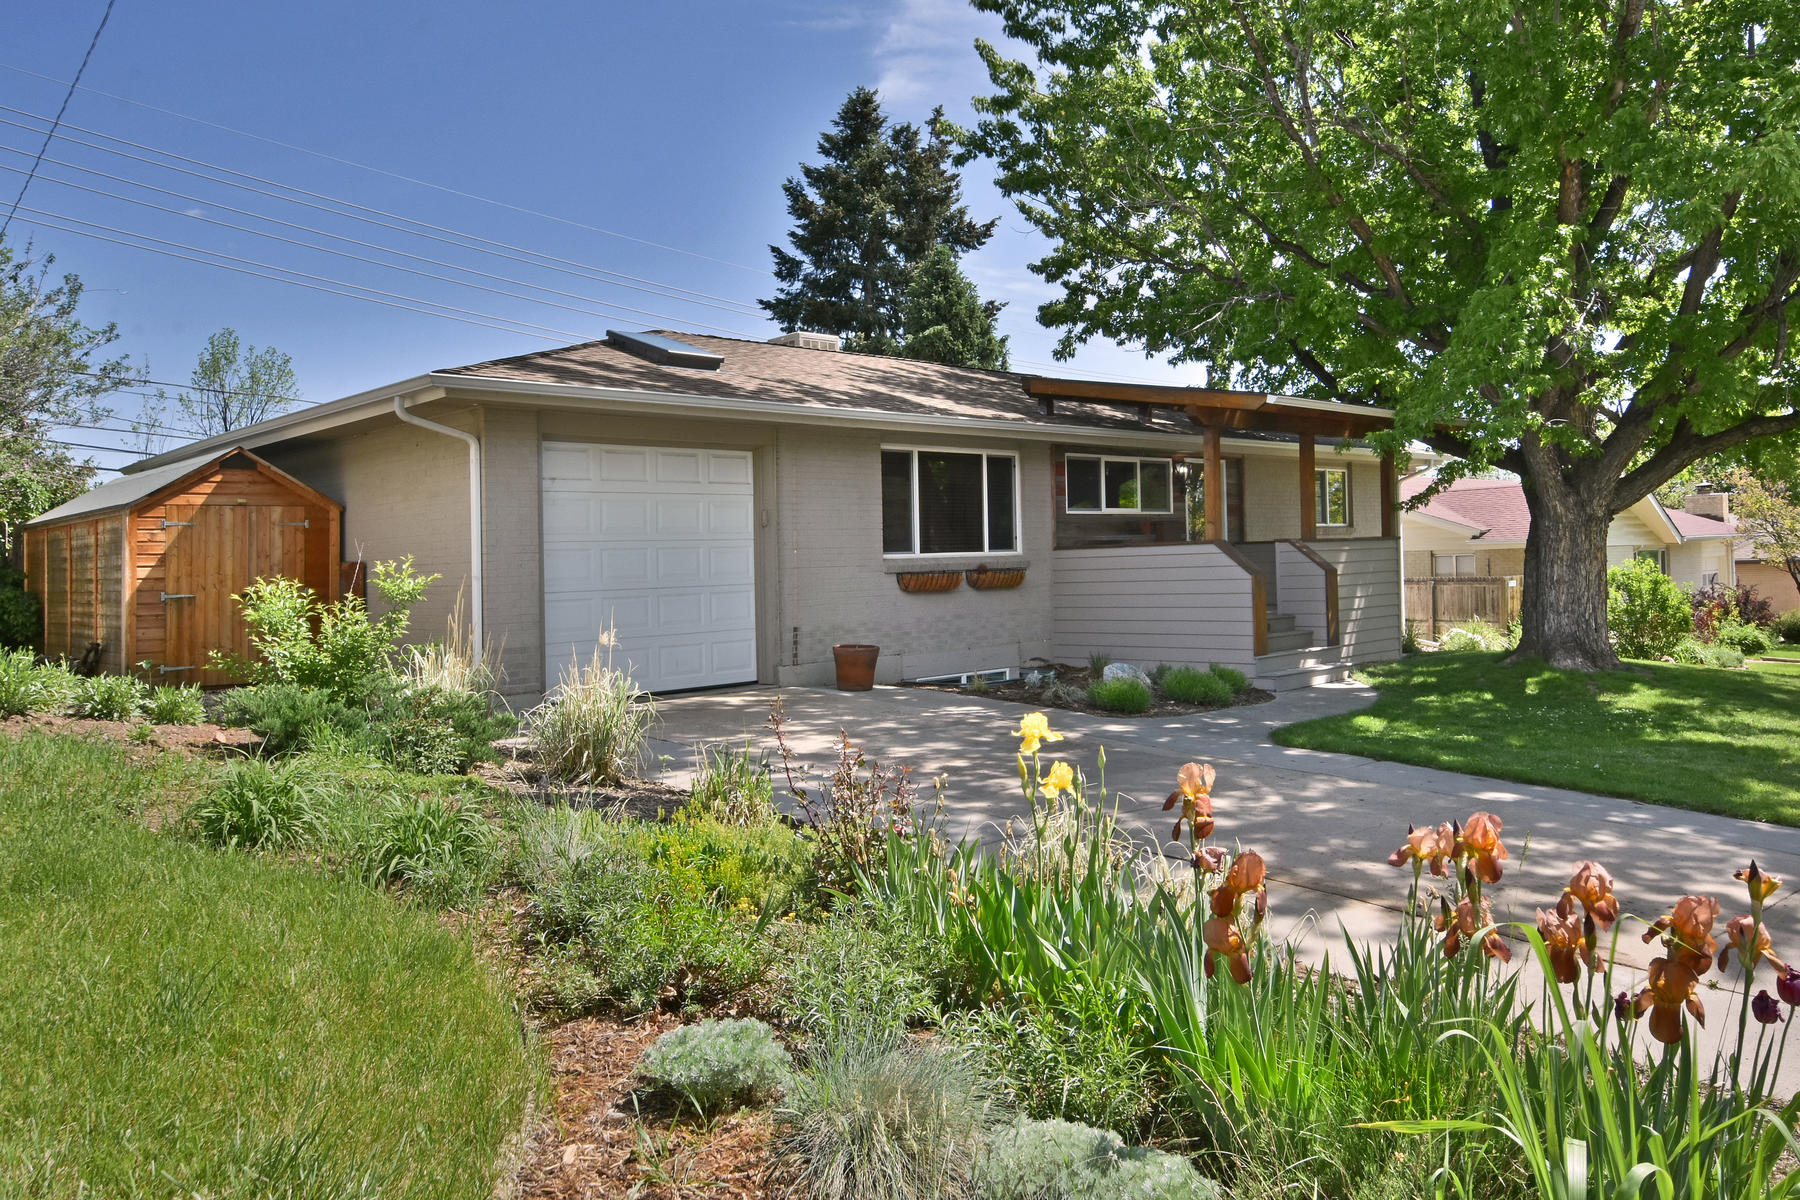 Single Family Homes for Sale at South Boulder Living With Access To The Flatirons 2805 Dartmouth Ave, Boulder, Colorado 80305 United States